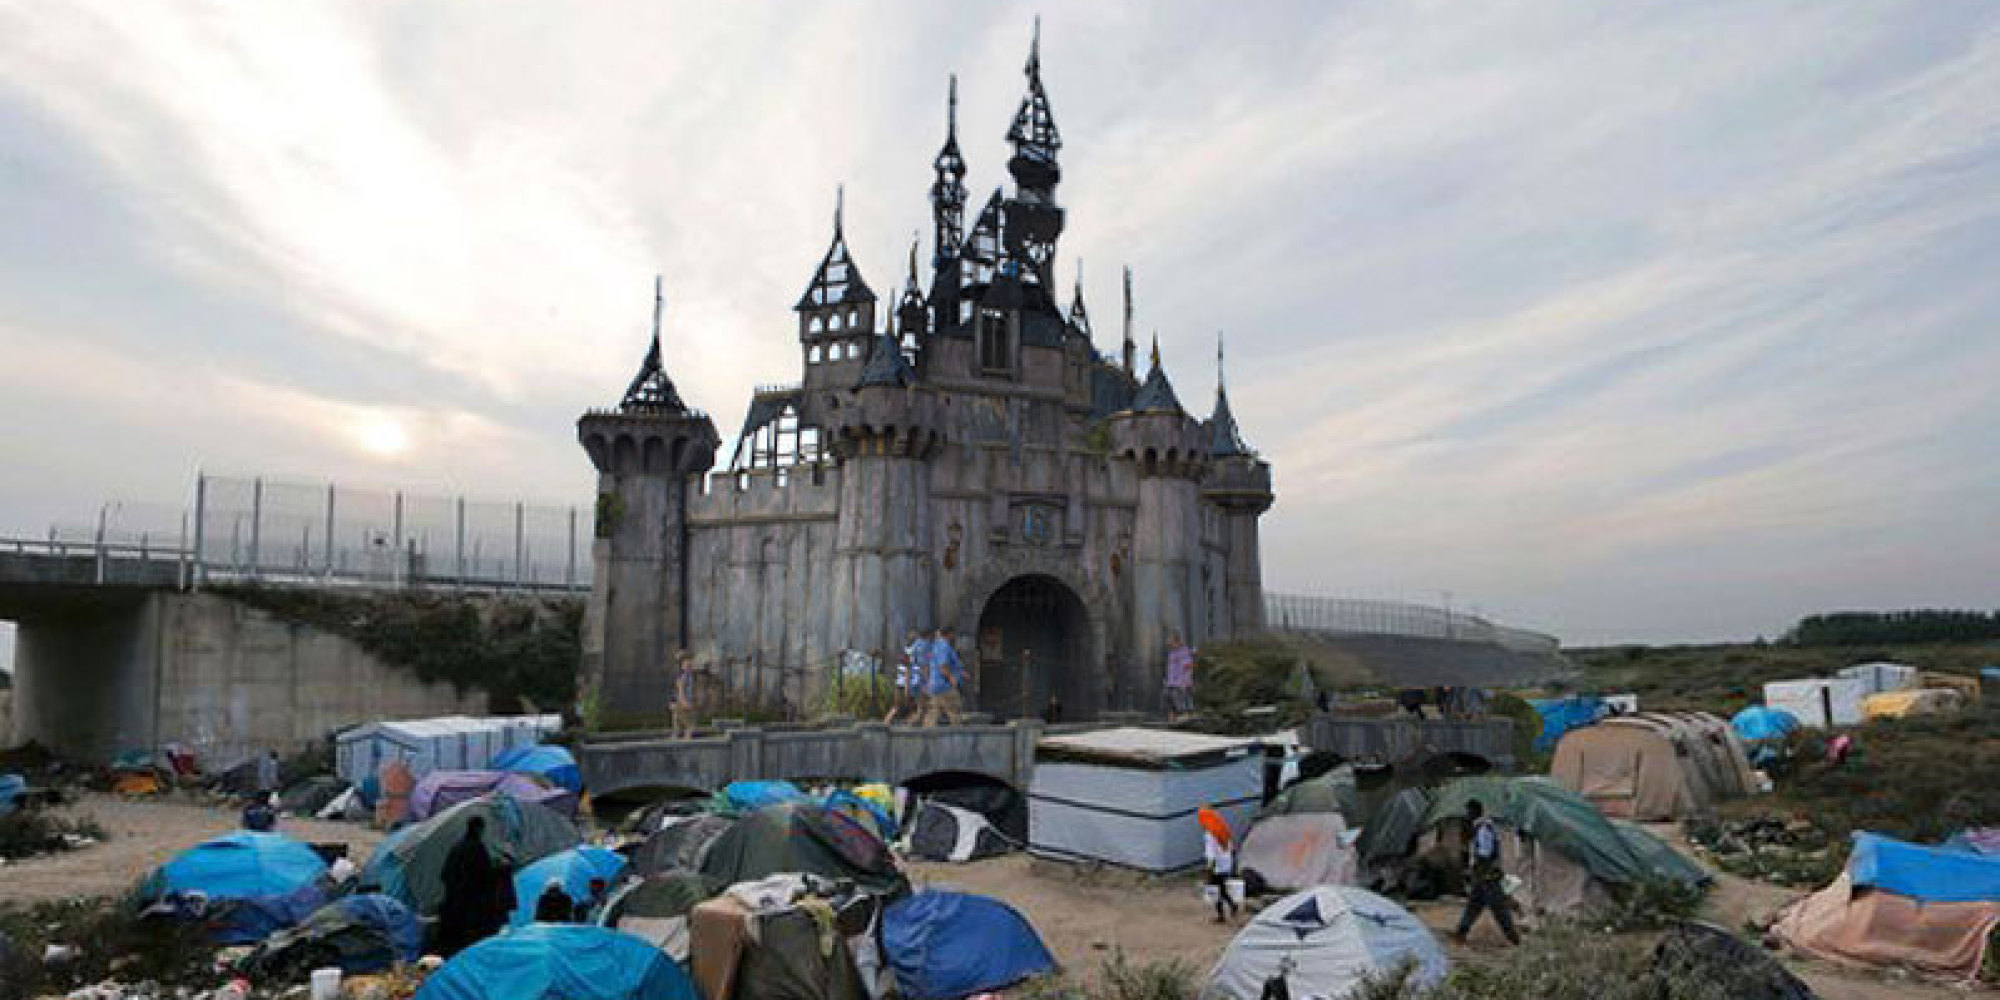 banksy envoie son dismaland dans la jungle de calais pour aider les r fugi s. Black Bedroom Furniture Sets. Home Design Ideas